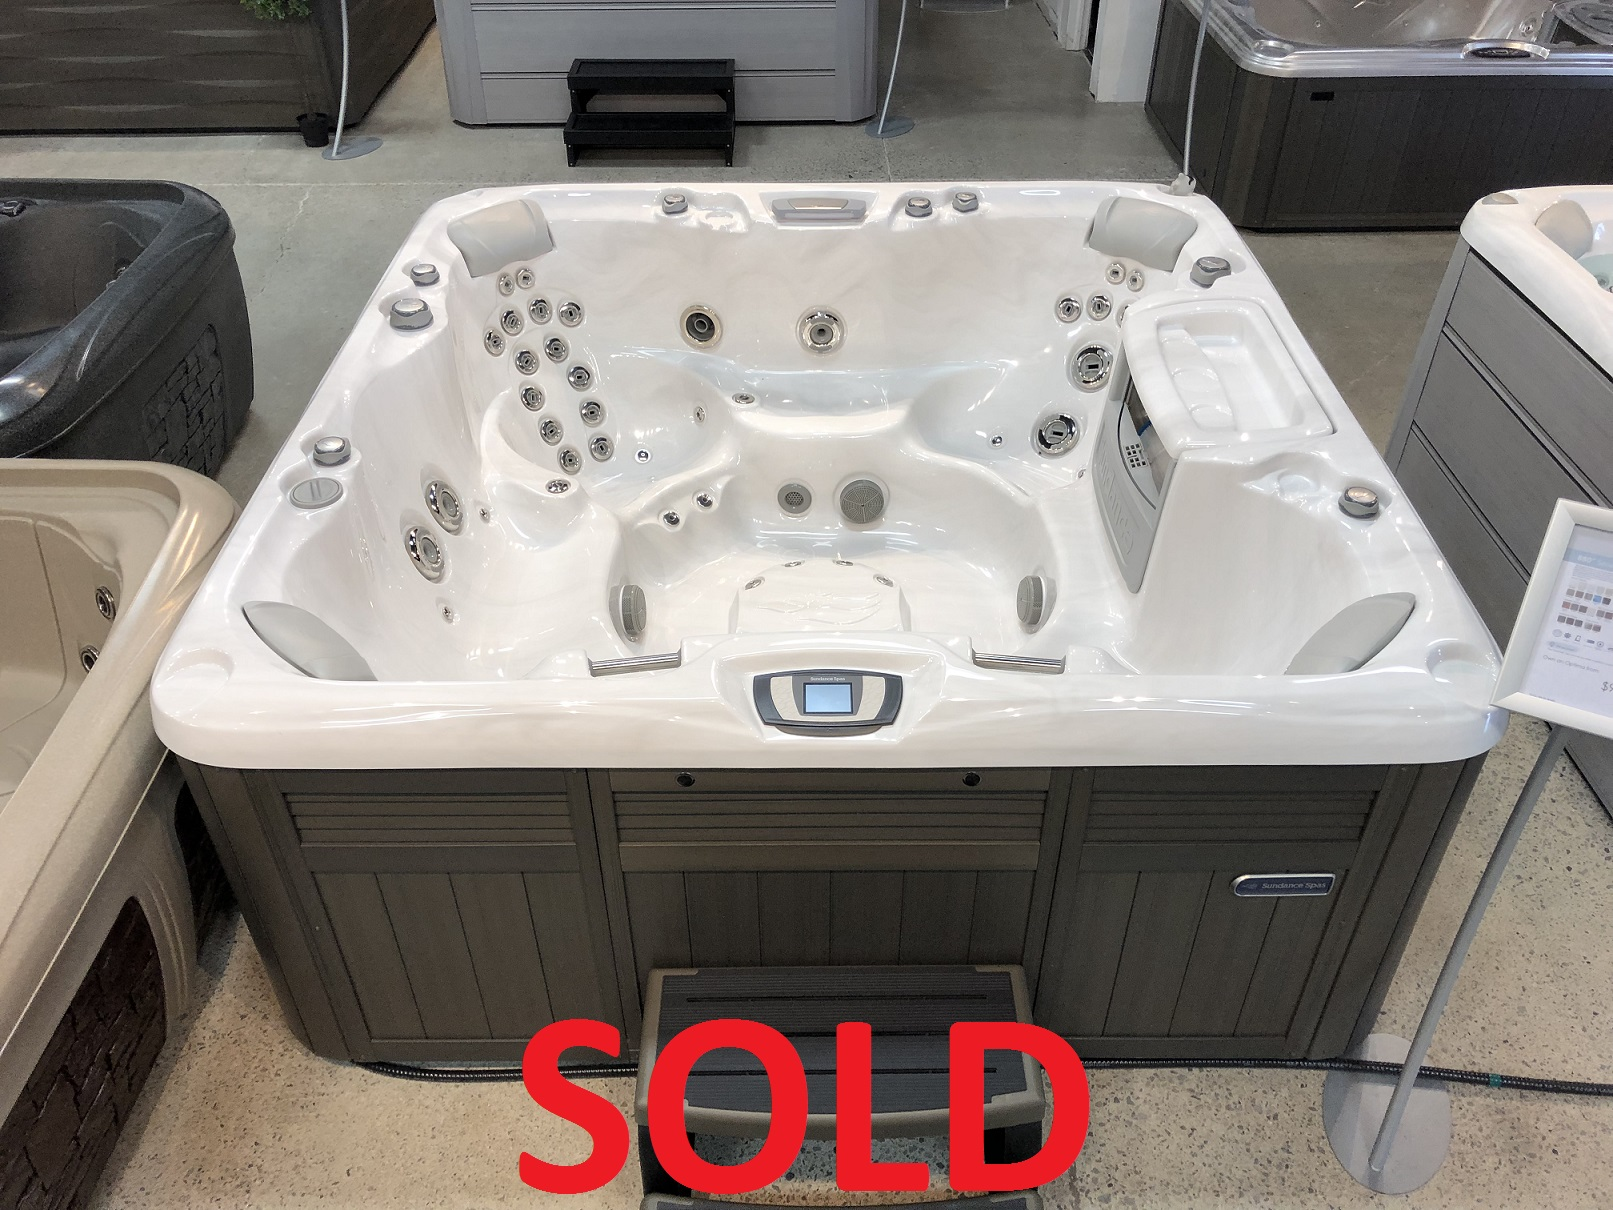 Sundance Spas 880 Series Optima 7 person hot tub spa whirlpool hot tubs near me Hamilton Ontario